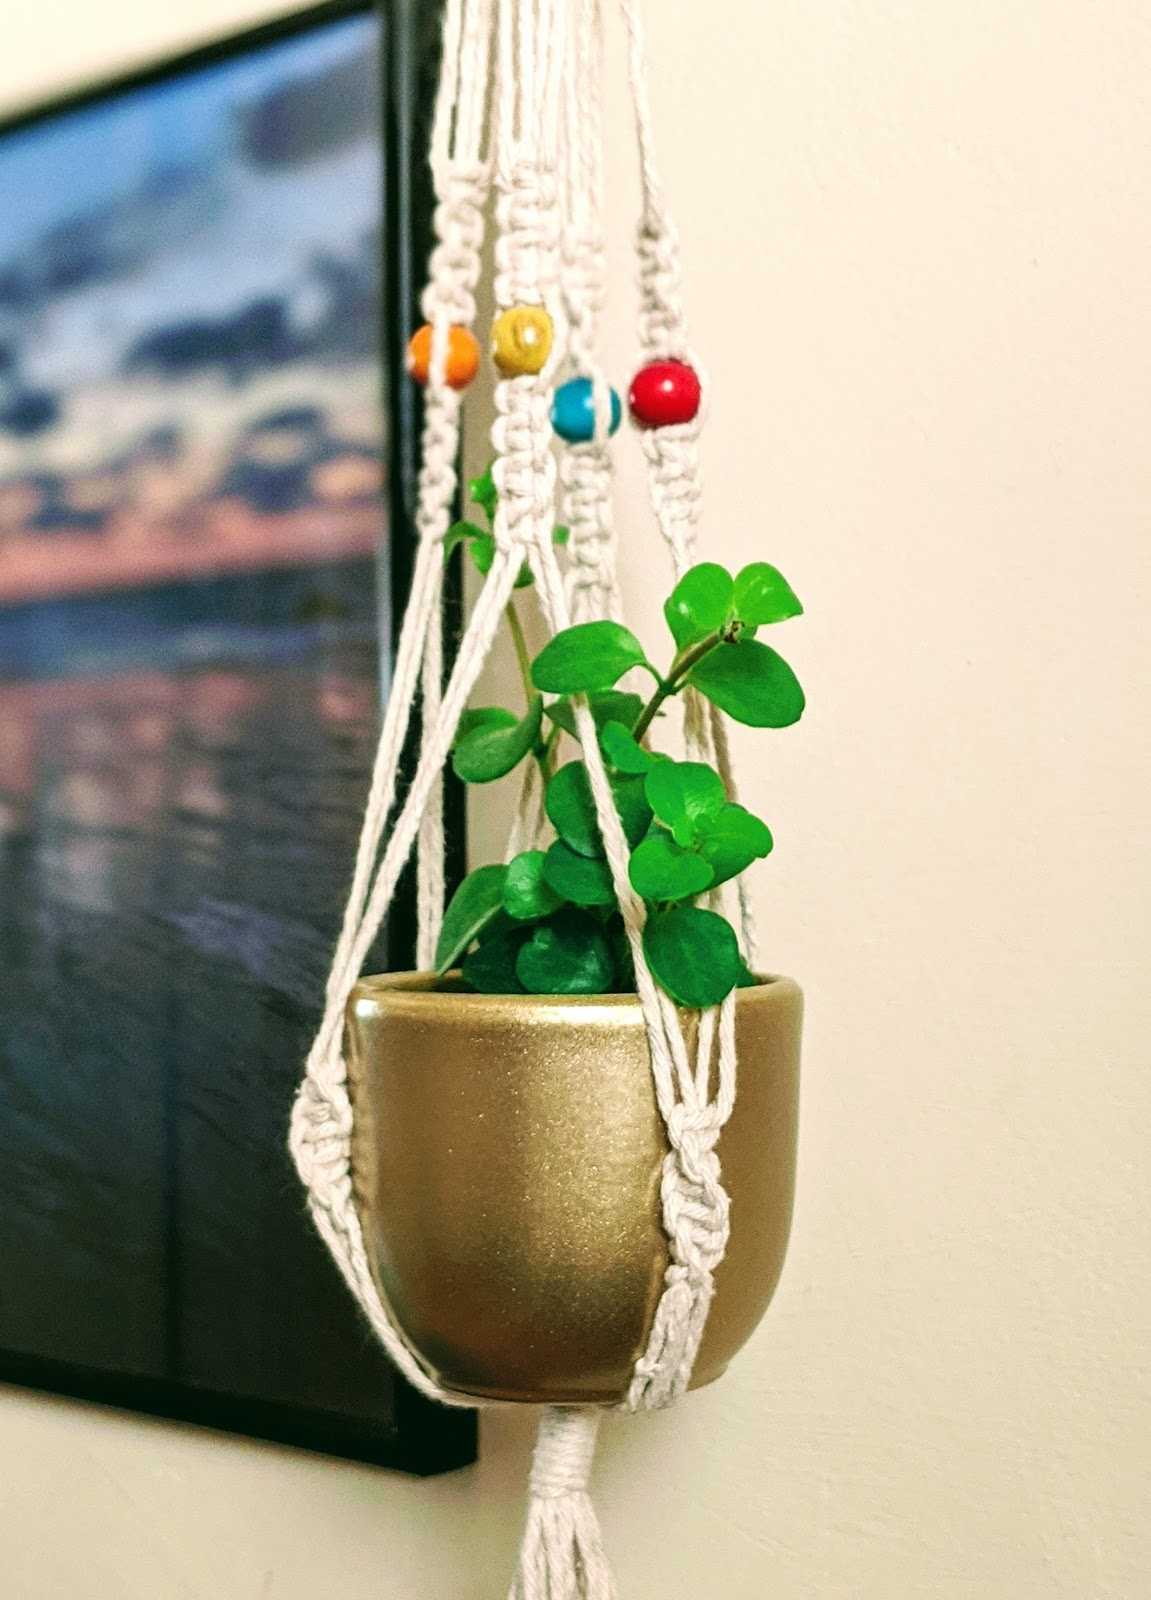 Enjoy my little macrame pot to give me a little bit of greenery and little CO2 conversion